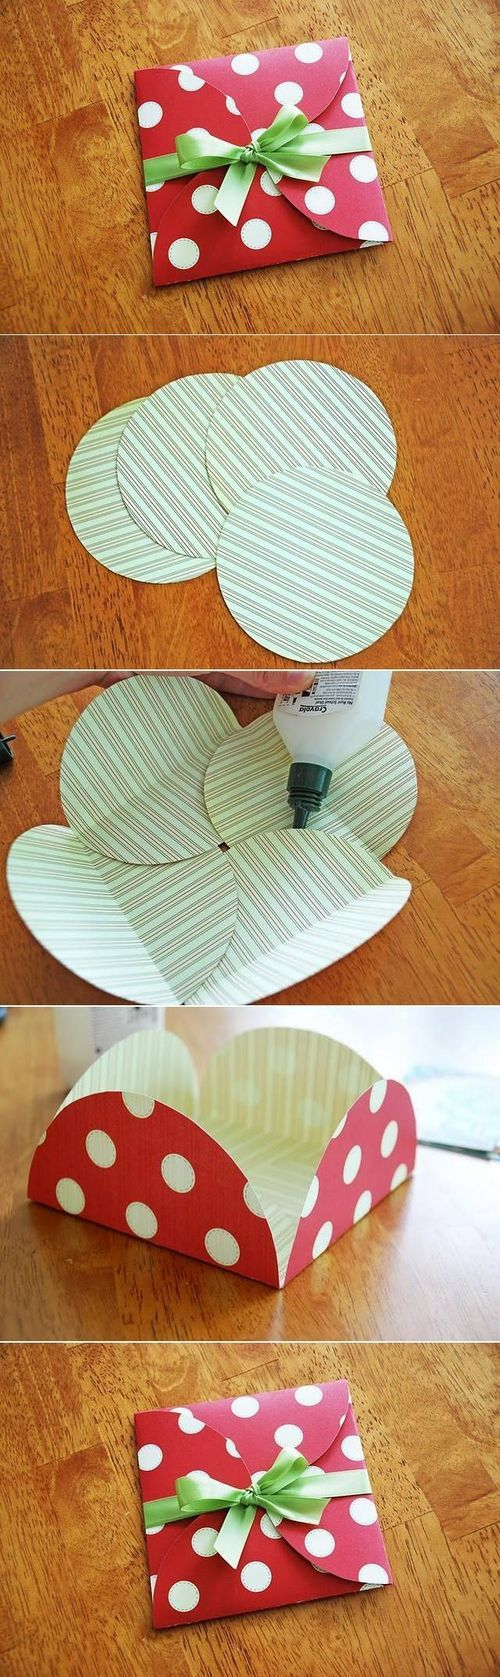 Easy and fun DIY envelope